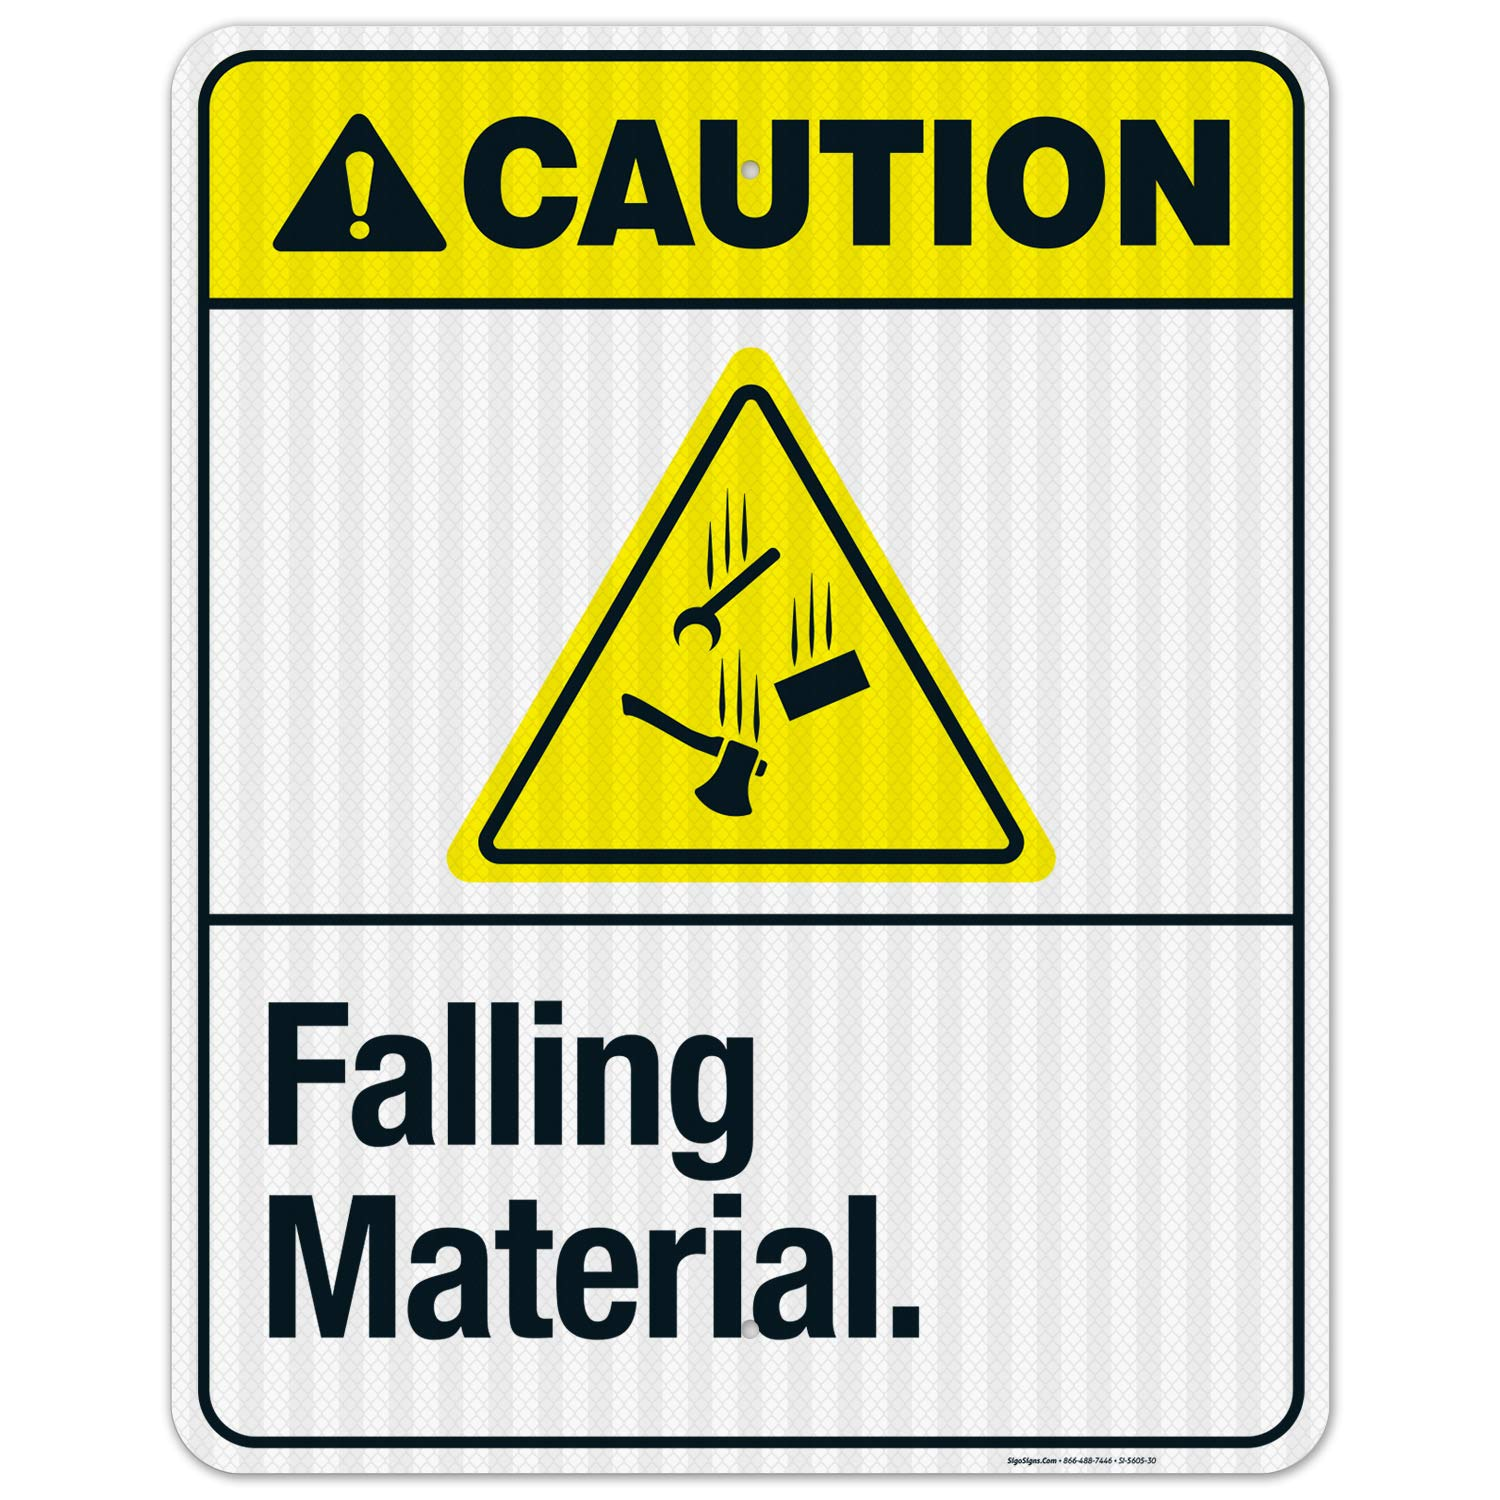 Falling Material Sign ANSI Caution 3M R EGP Max 70% OFF Max 50% OFF Inches 24x30